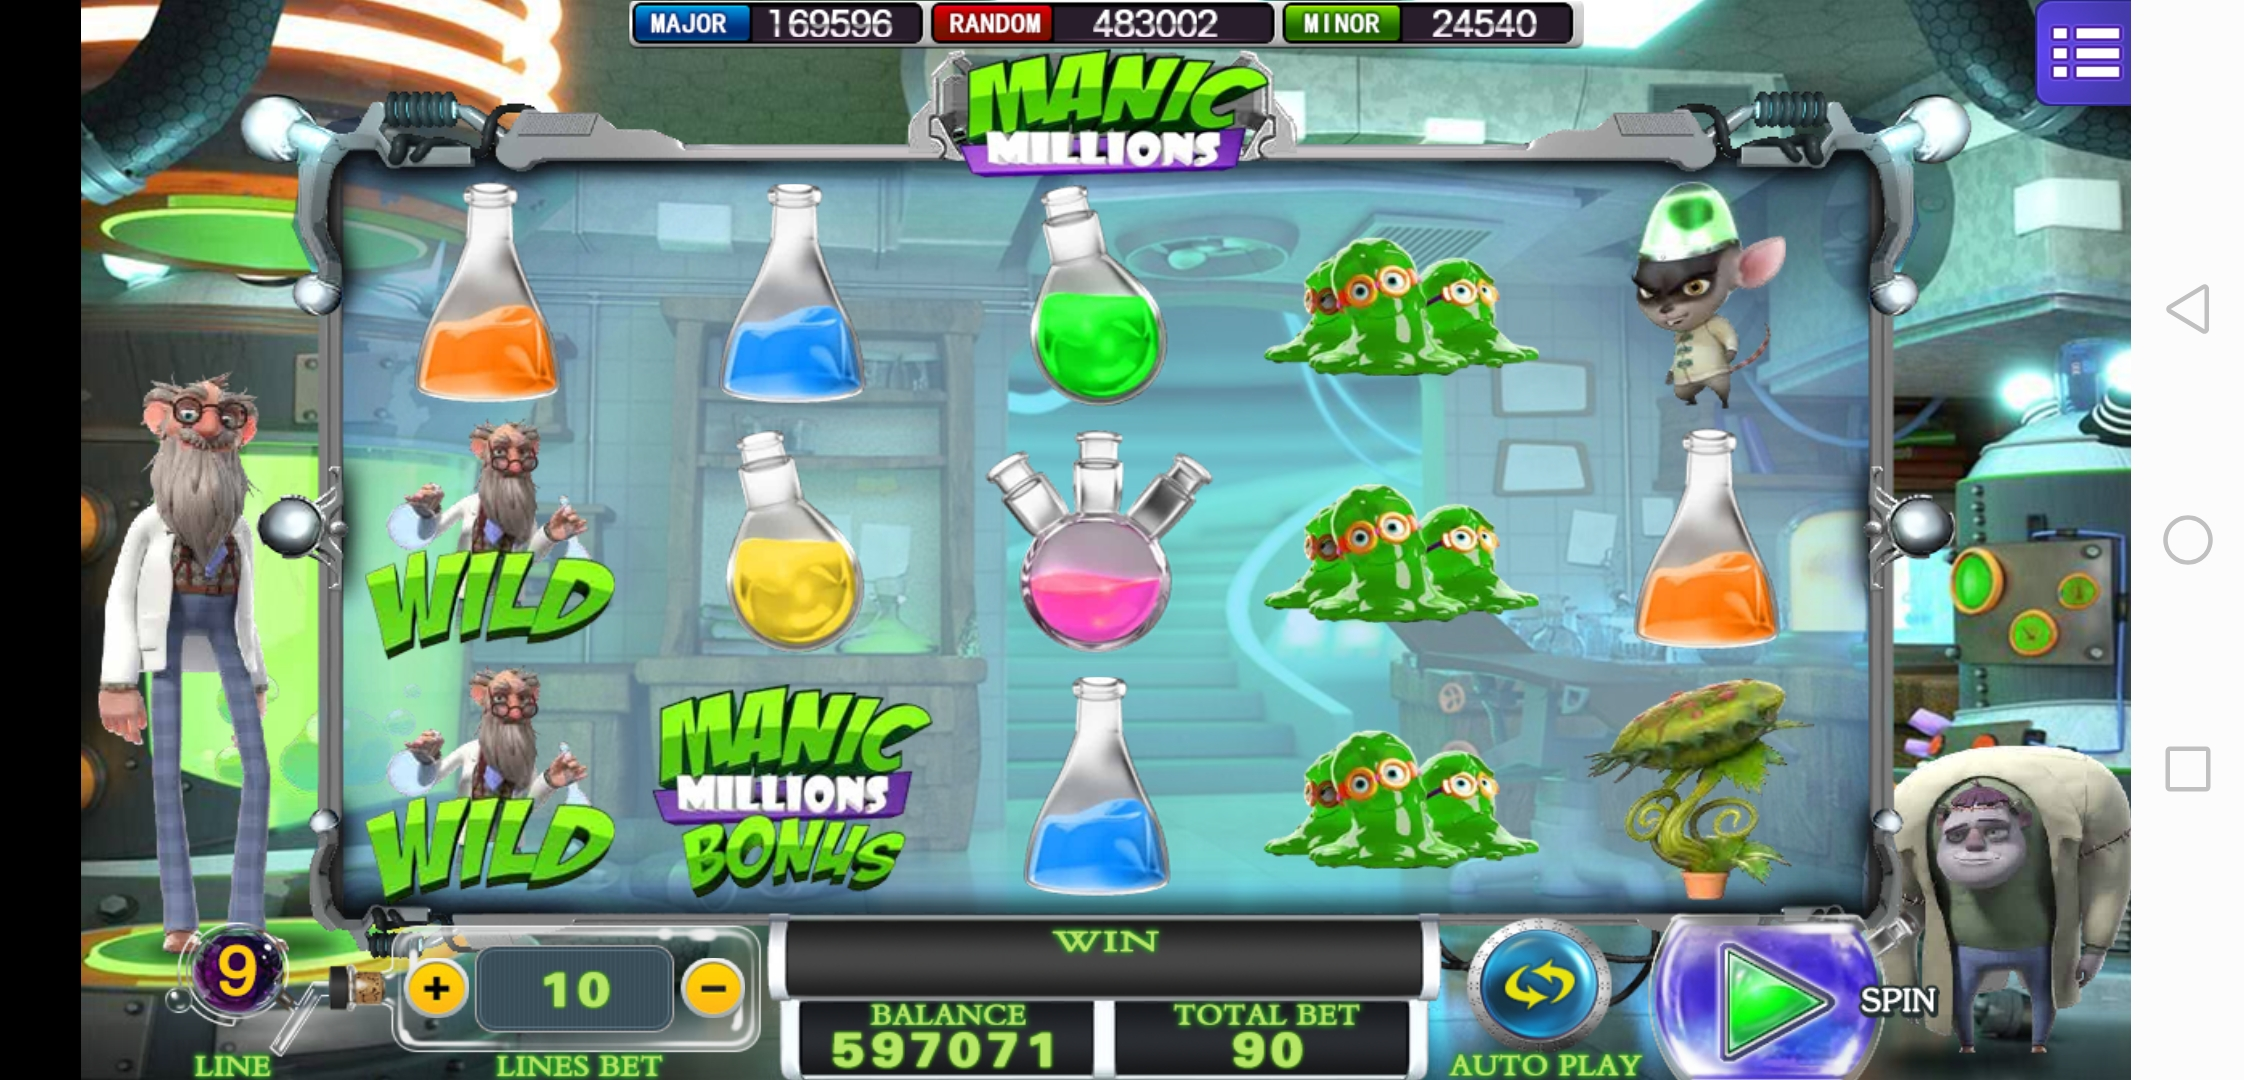 Manic Millions User Interface